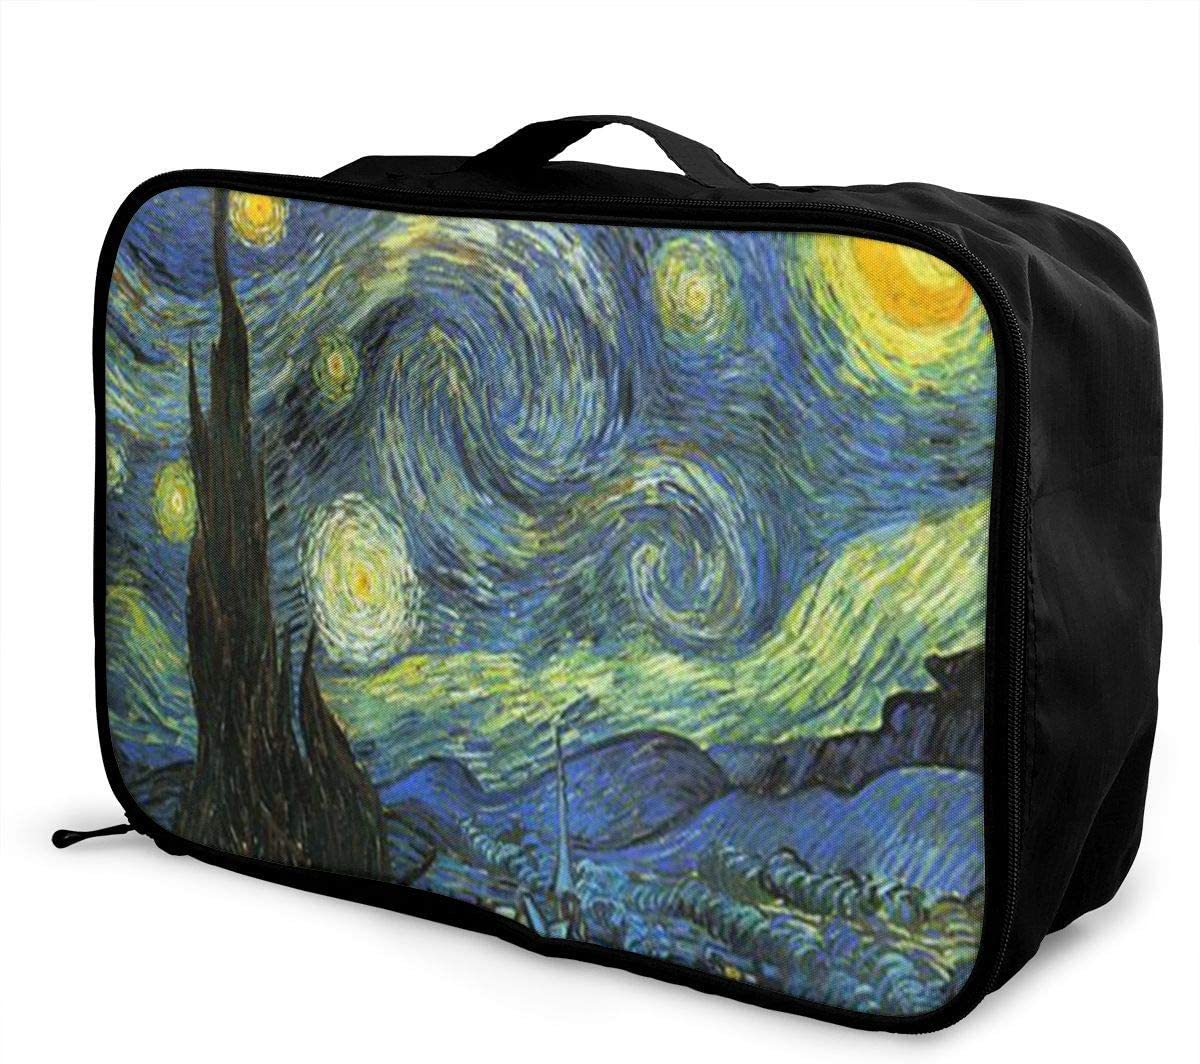 Travel Bags Starry Night Portable Foldable Trolley Handle Luggage Bag